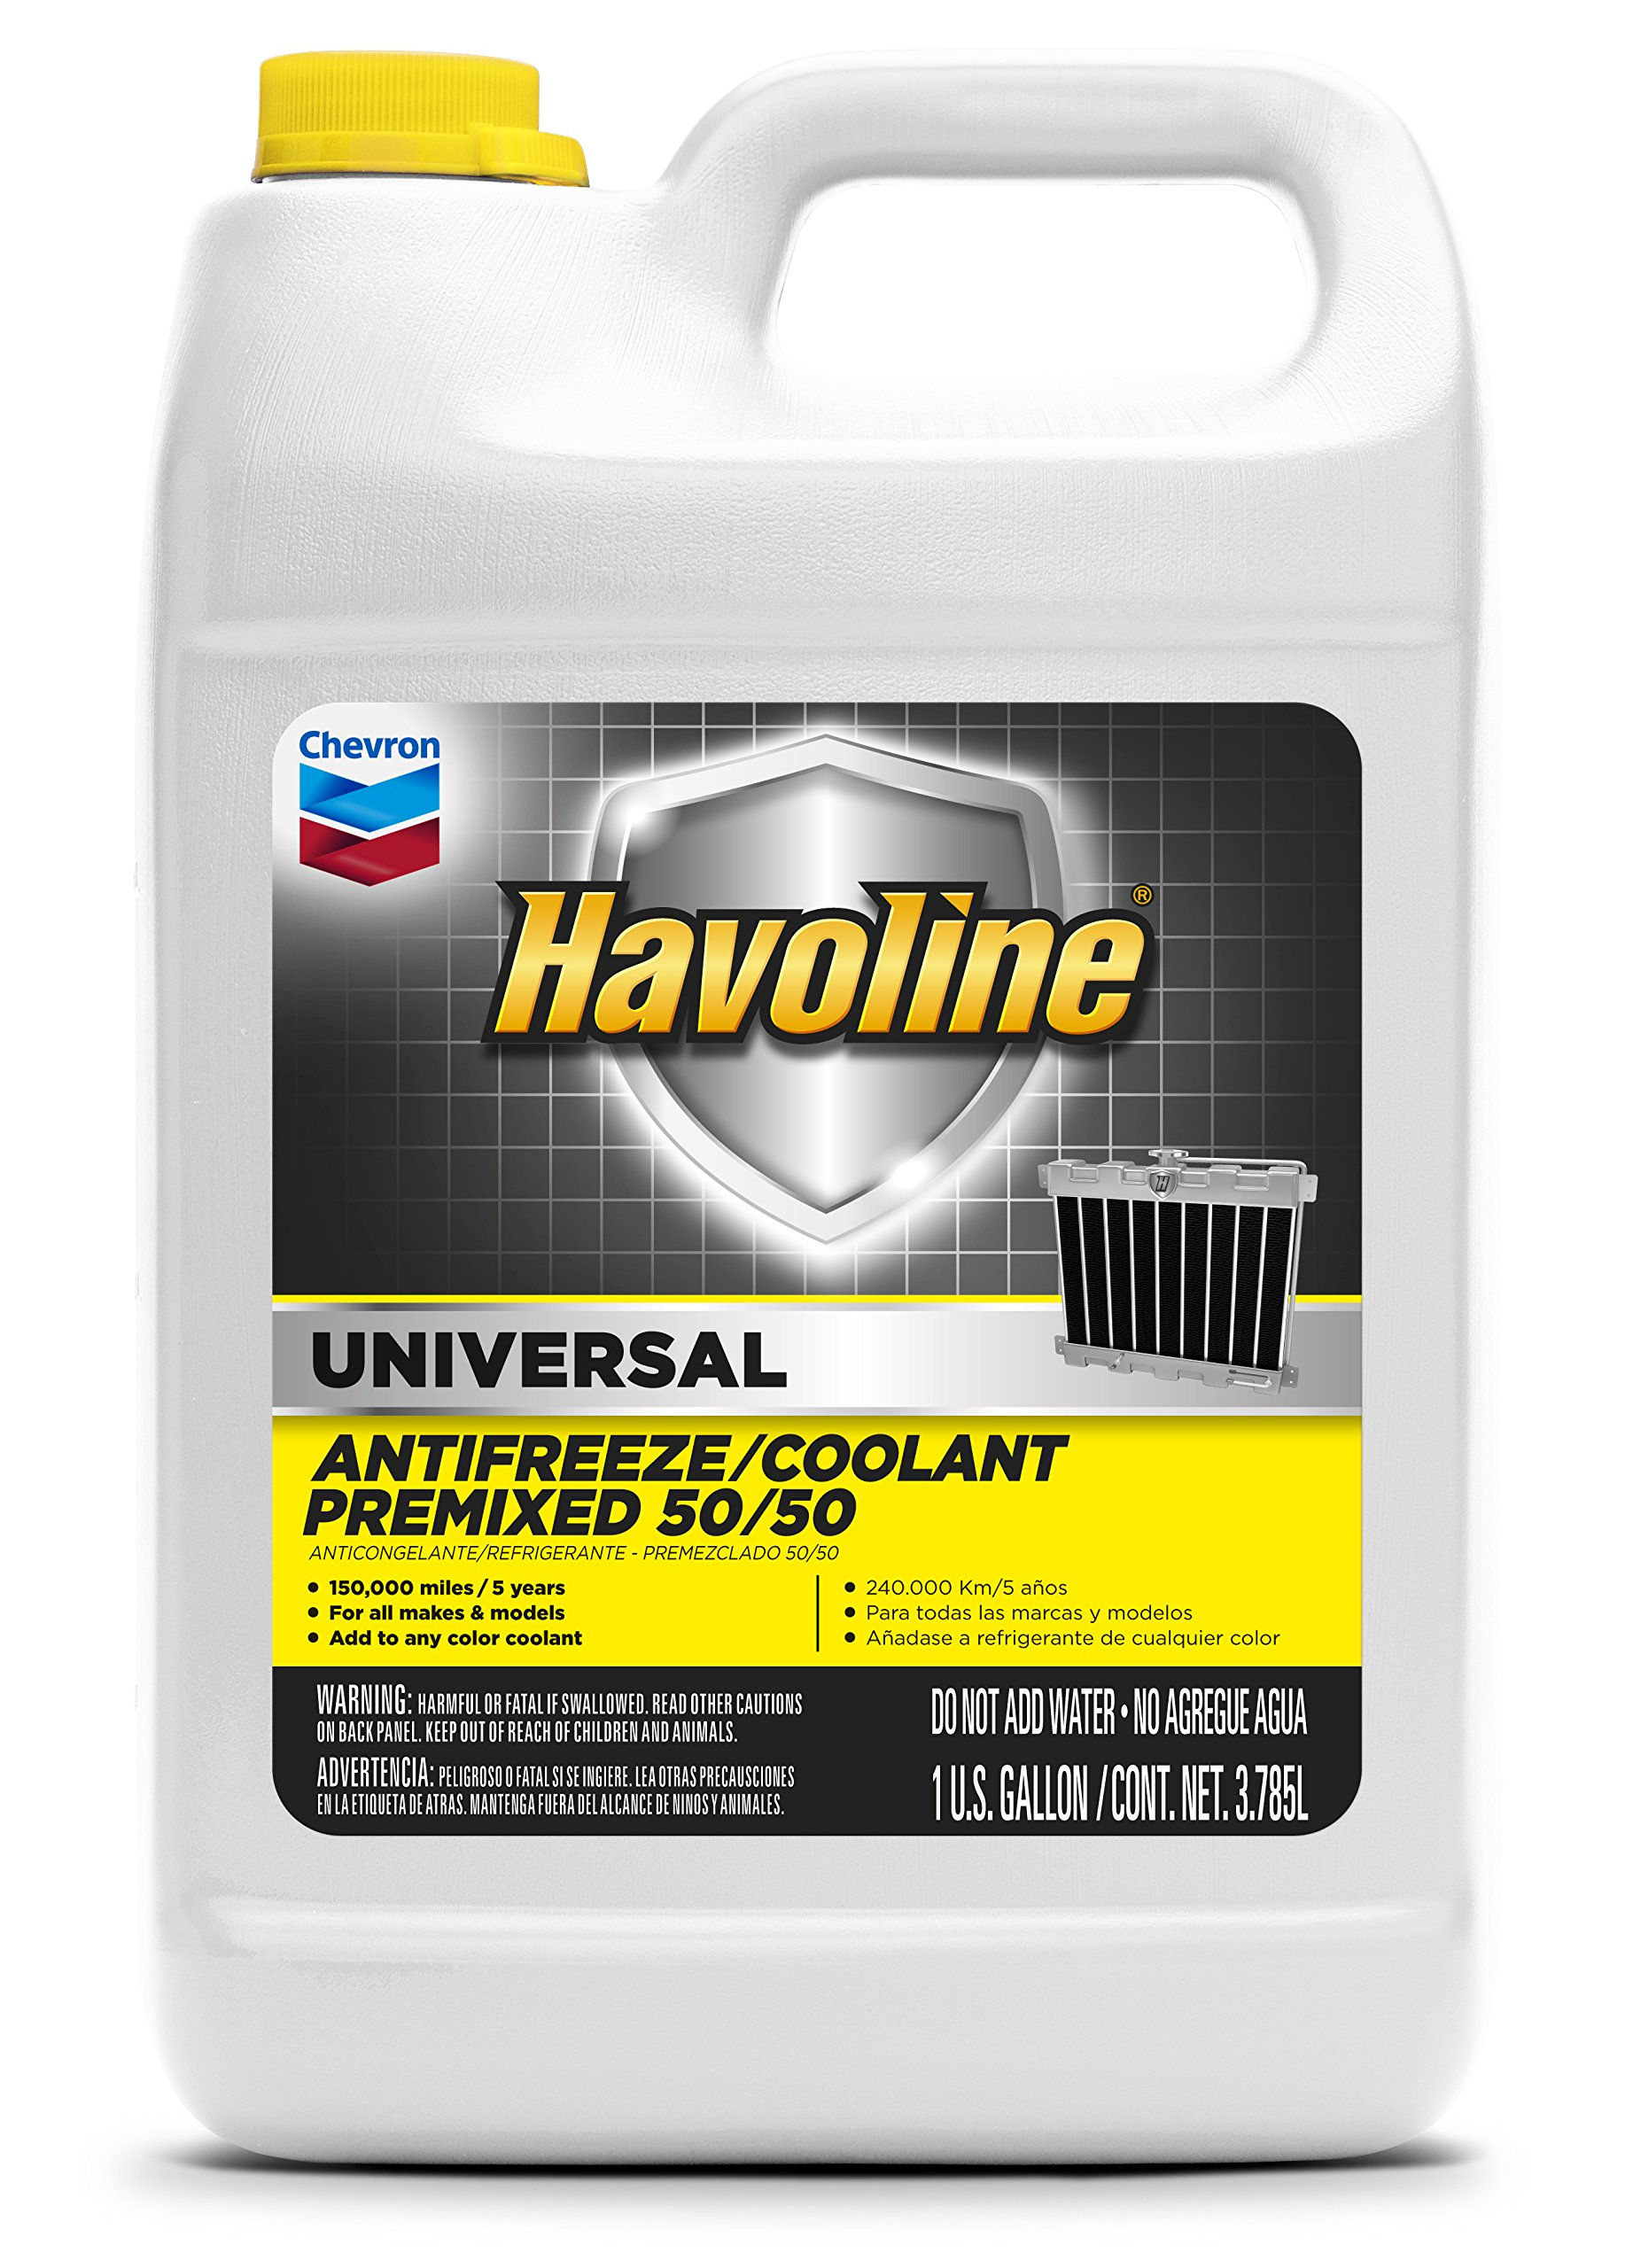 Havoline Universal Prediluted 50/50 Antifreeze/Coolant - 1 Gallon, (Pack of 6) by Havoline